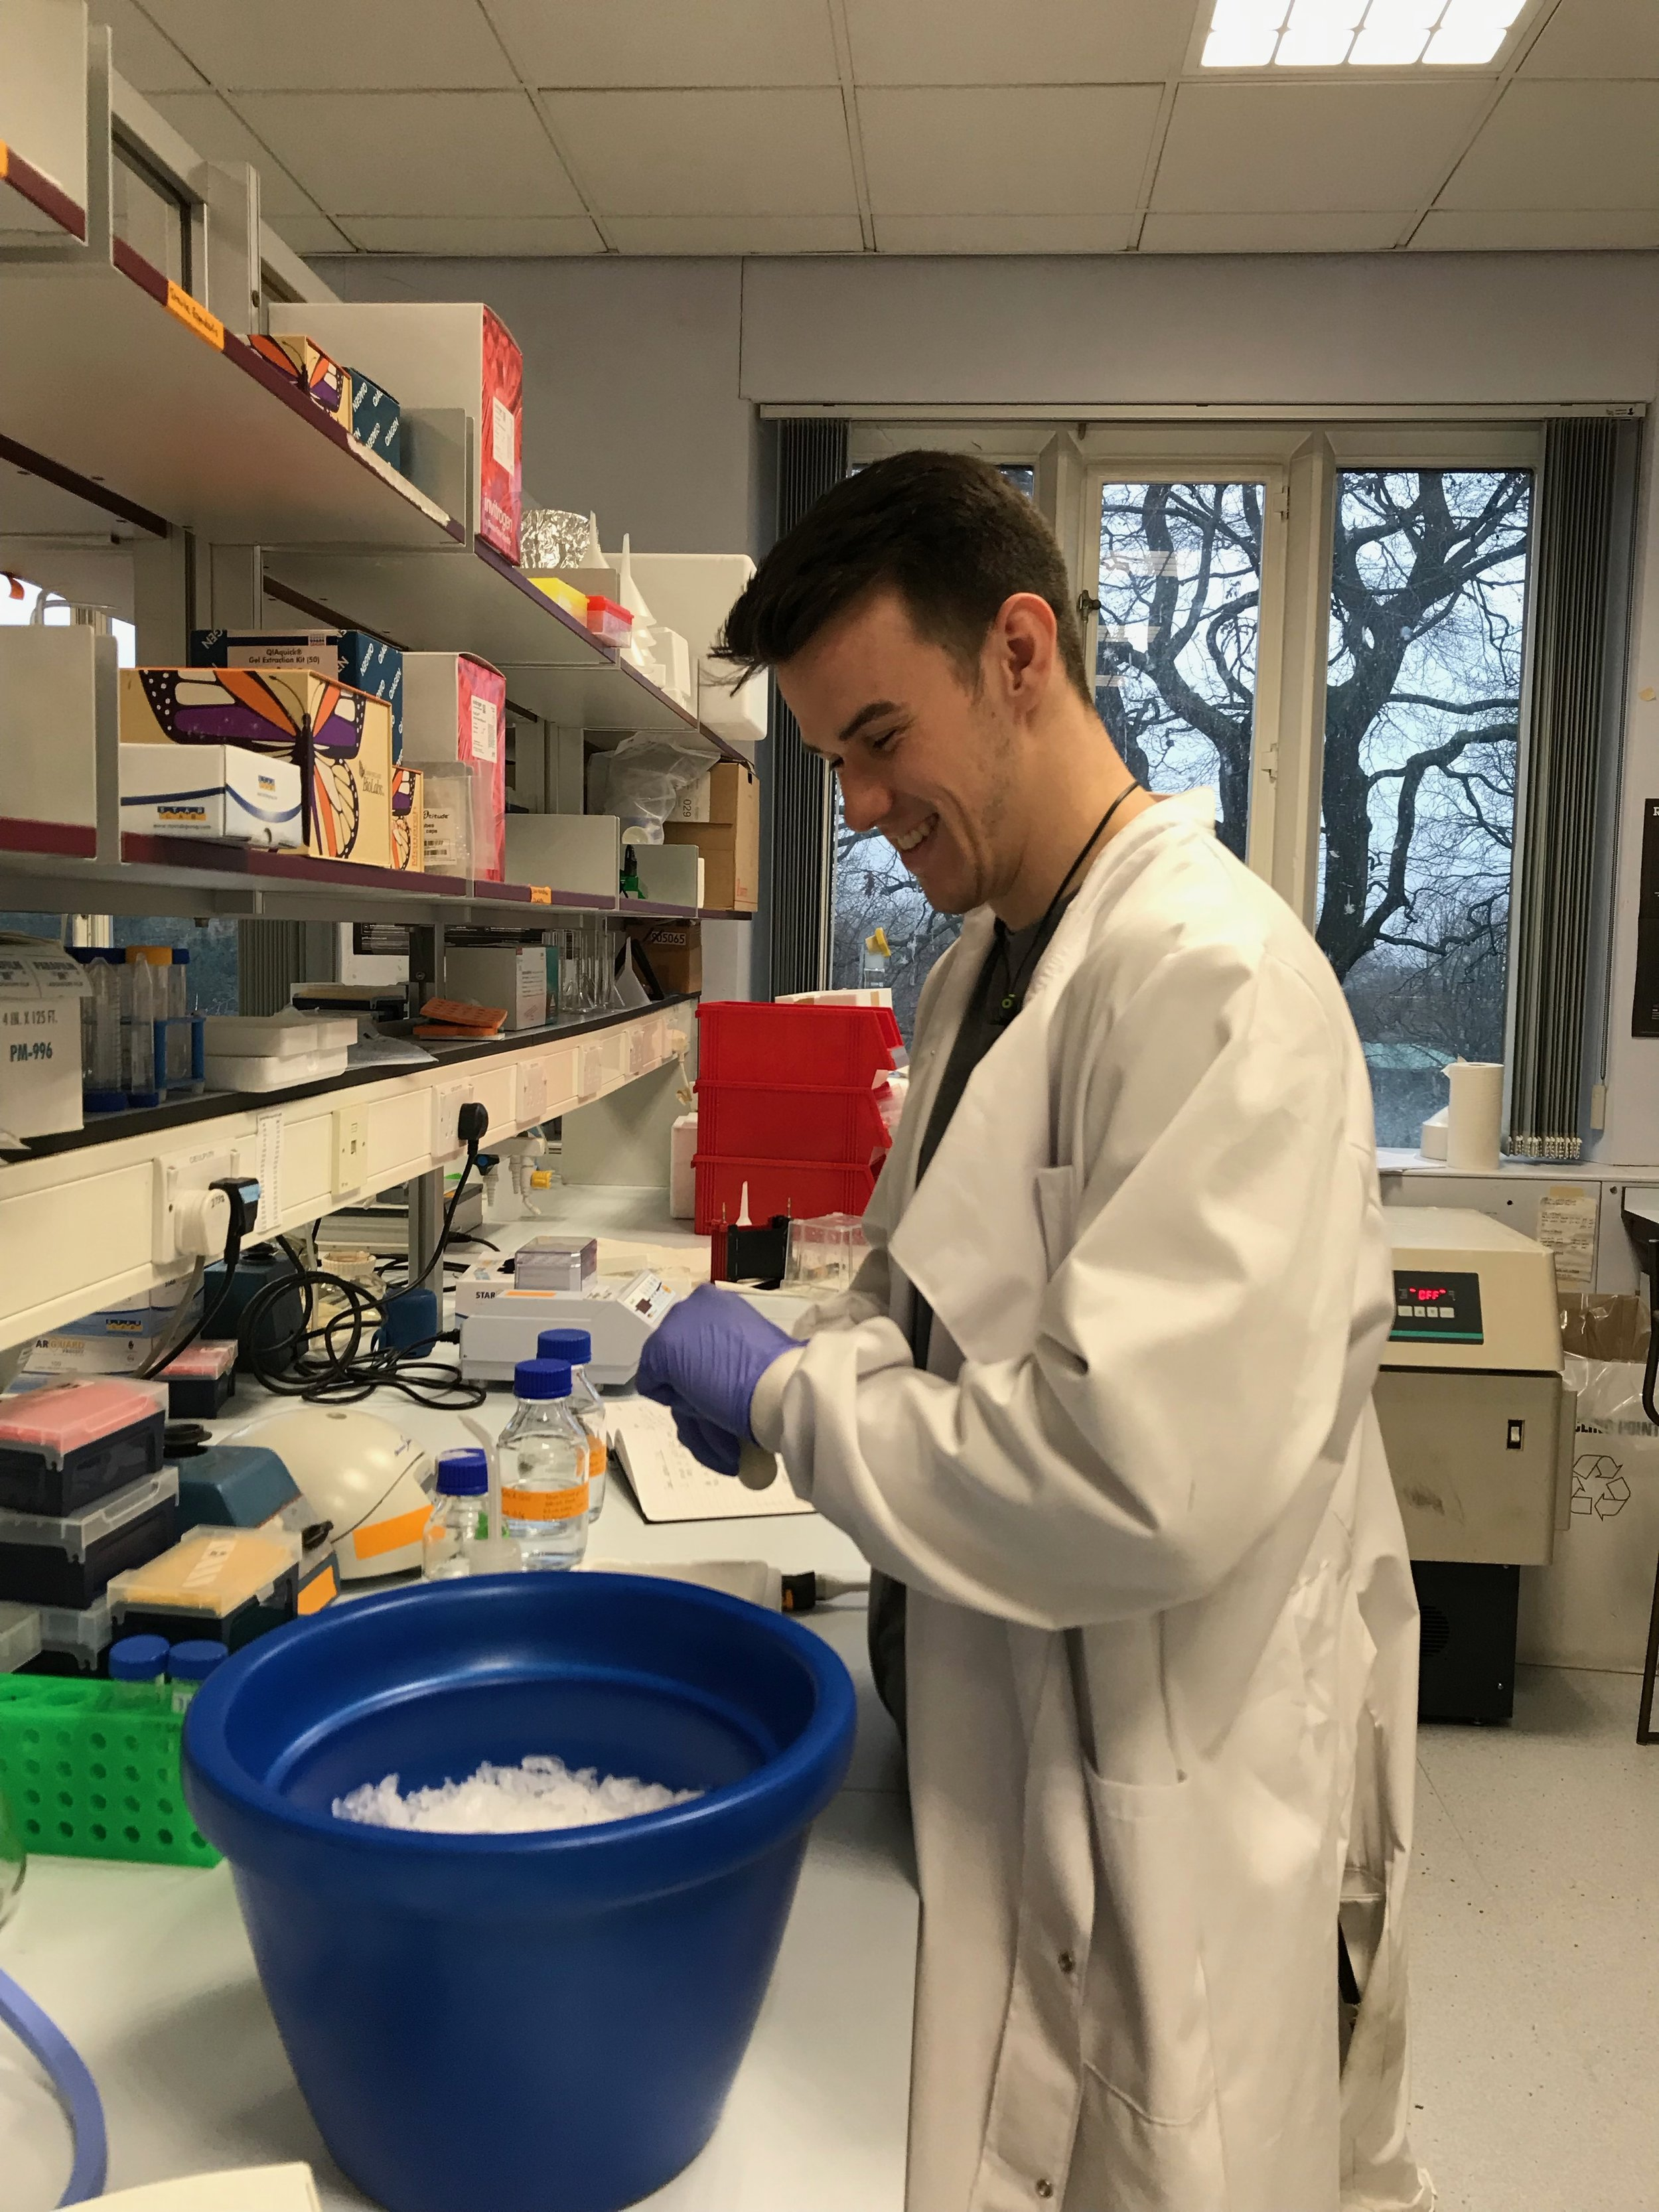 Christopher Callaghan - Chris is a 4th year MBiolSci student. He is working with us for the duration of his final year lab project, developing methods for probing RNA structure with single molecule FRET as part of our collaboration with Tim Craggs.